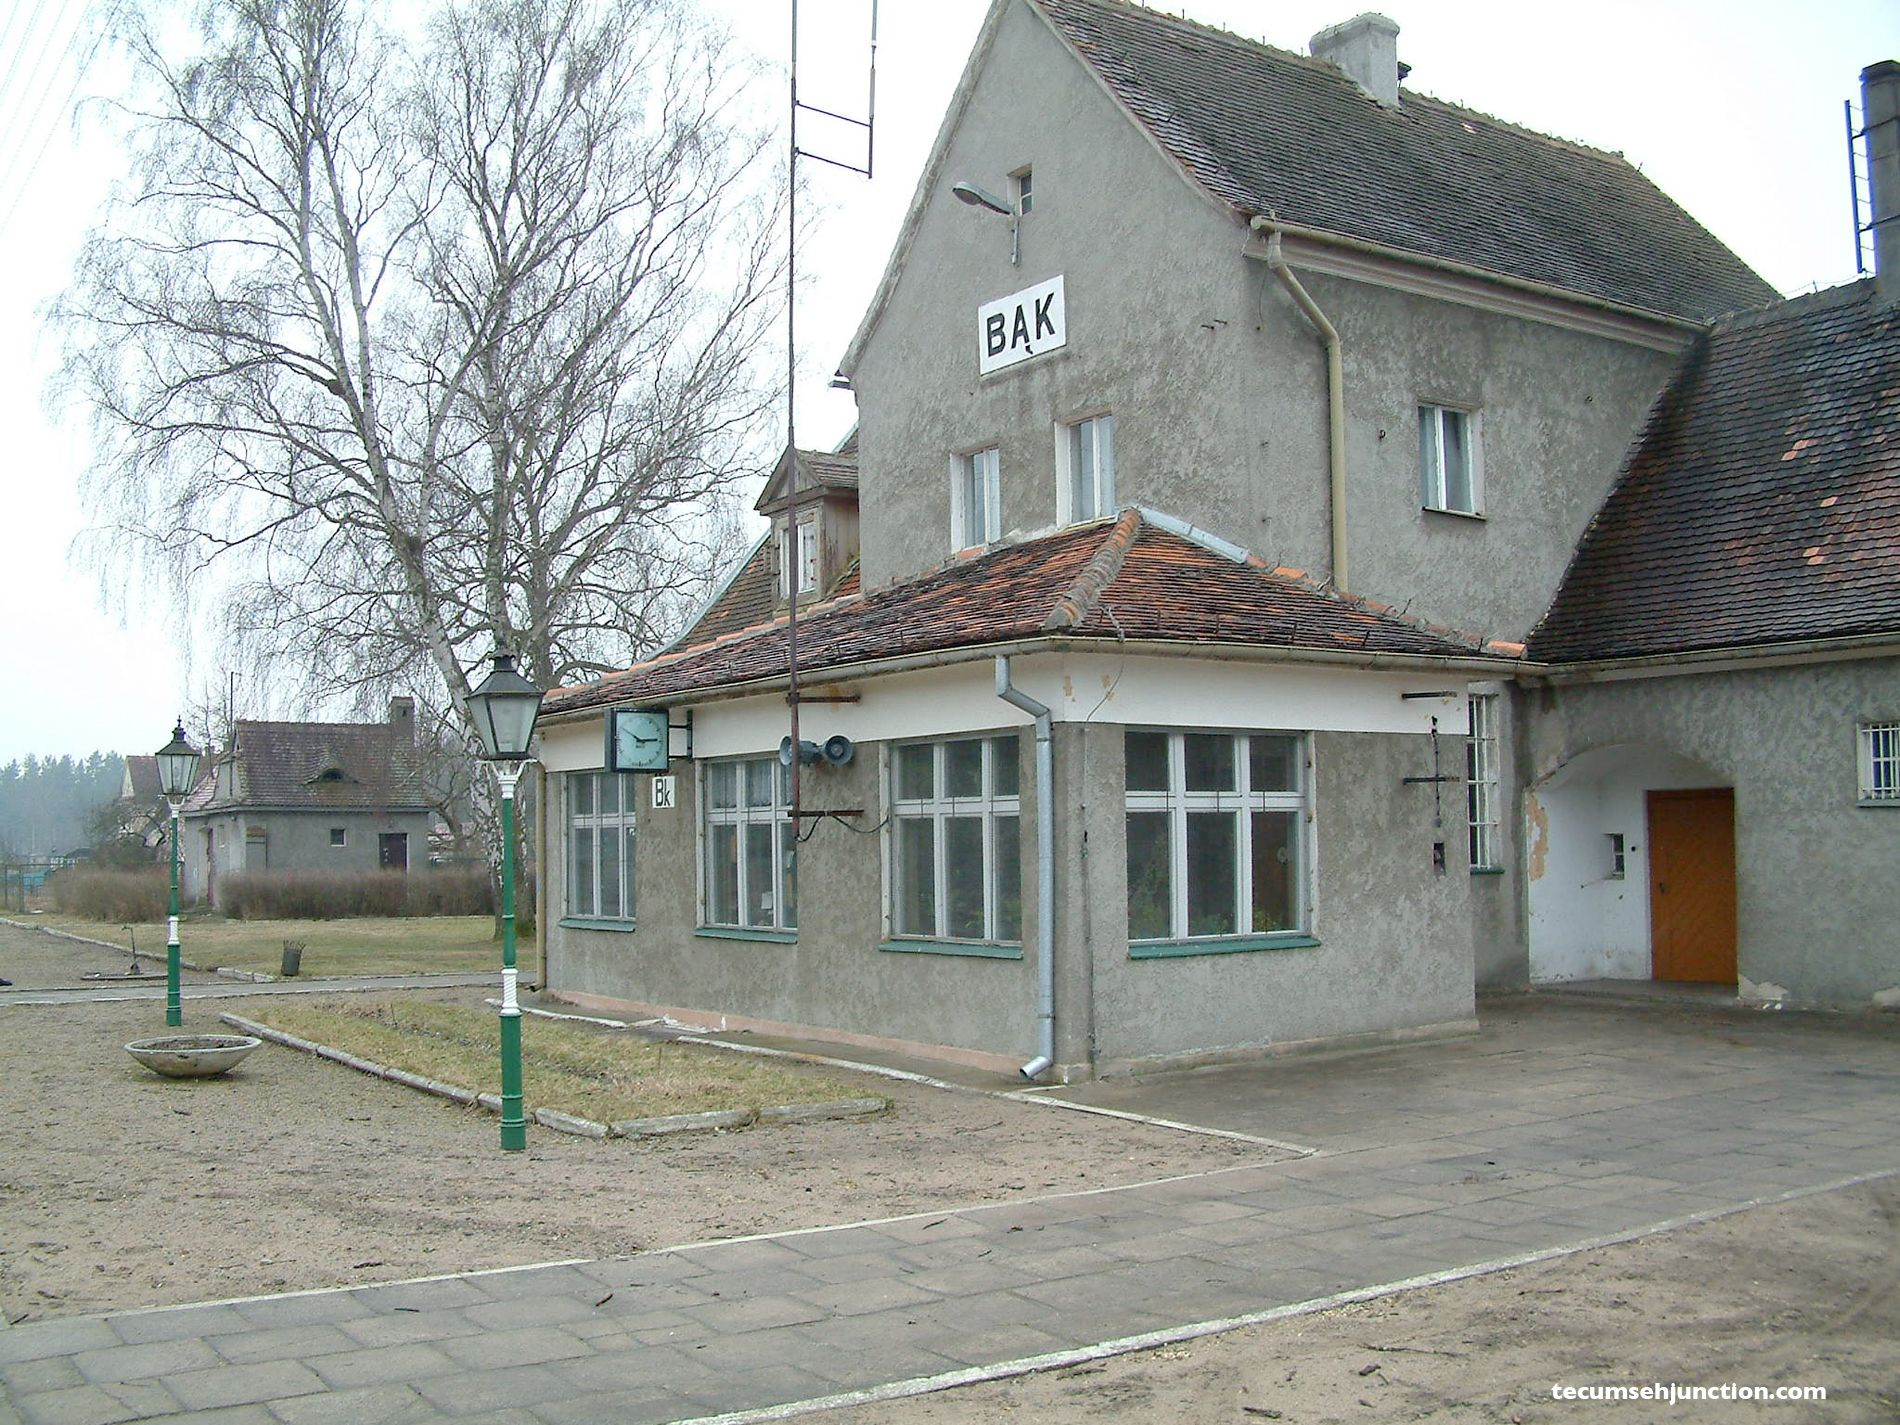 Bąk station with the signal box in front and the WC building in the distance